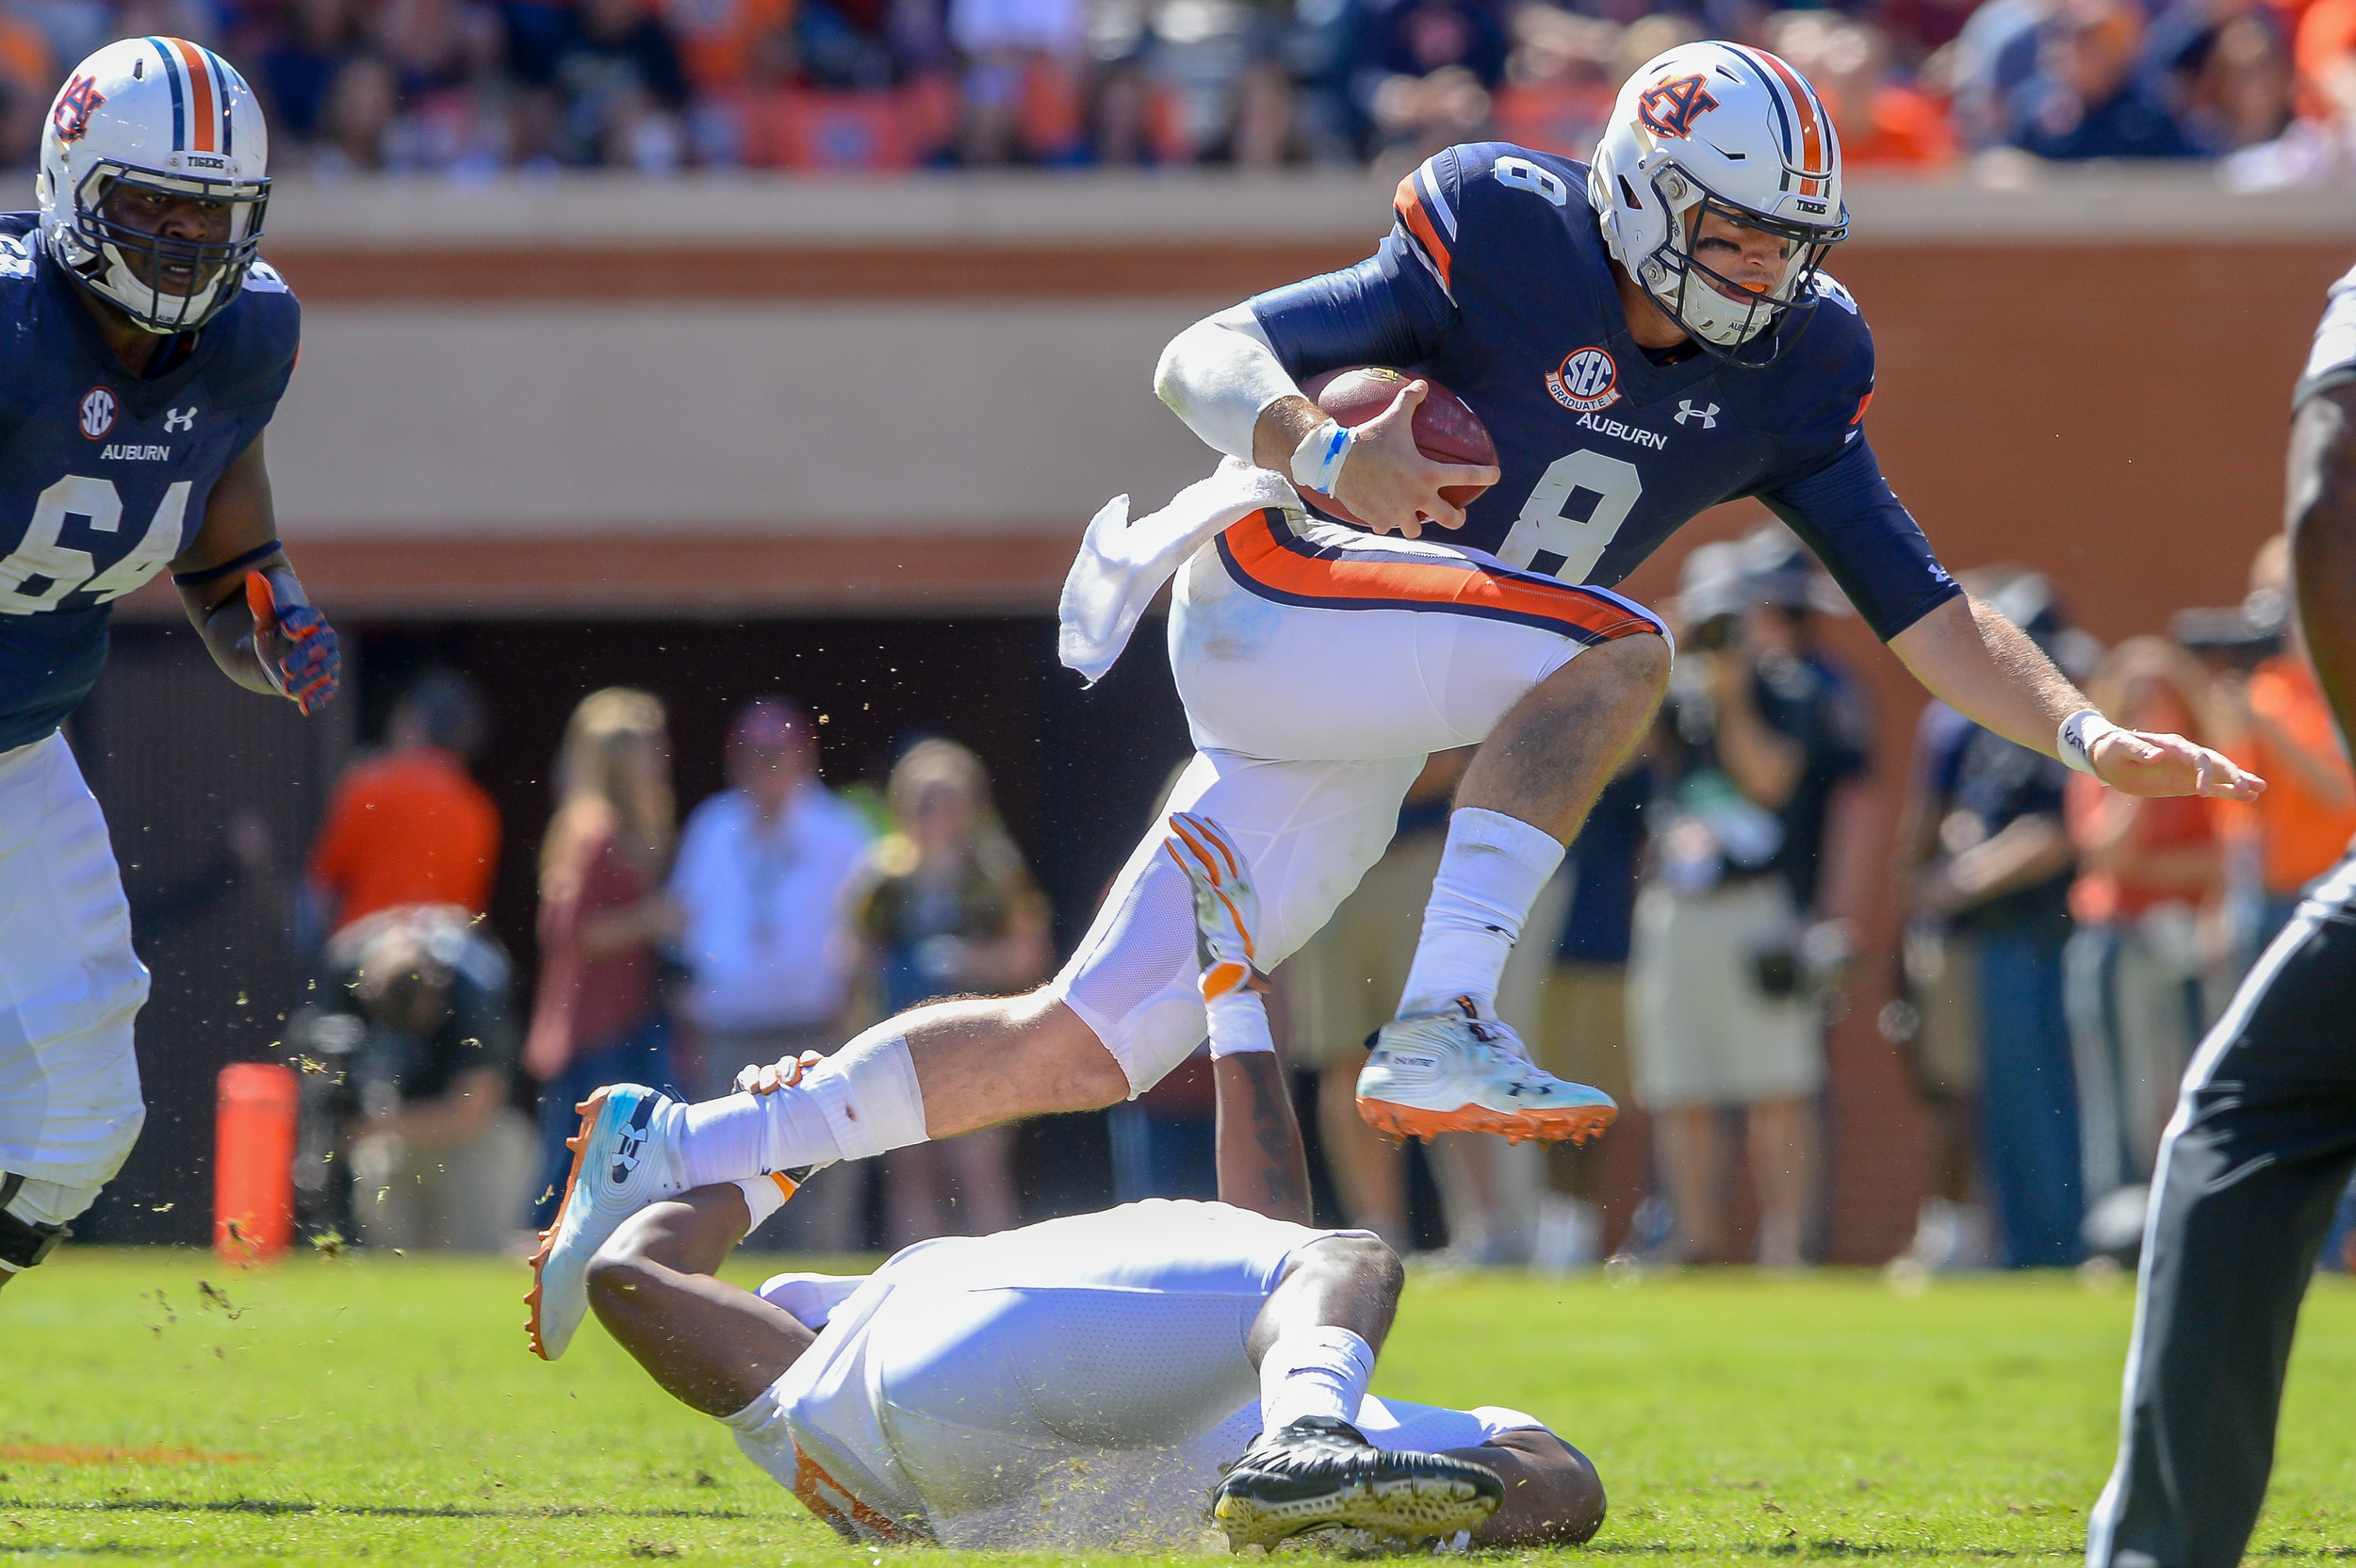 Auburn Tigers quarterback Jarrett Stidham (8) hurdles over Tennessee Volunteers linebacker Darrell Taylor (19) during the second half of Saturday's game, at Jordan-Hare Stadium in Auburn, AL. Daily Mountain Eagle -  Jeff Johnsey